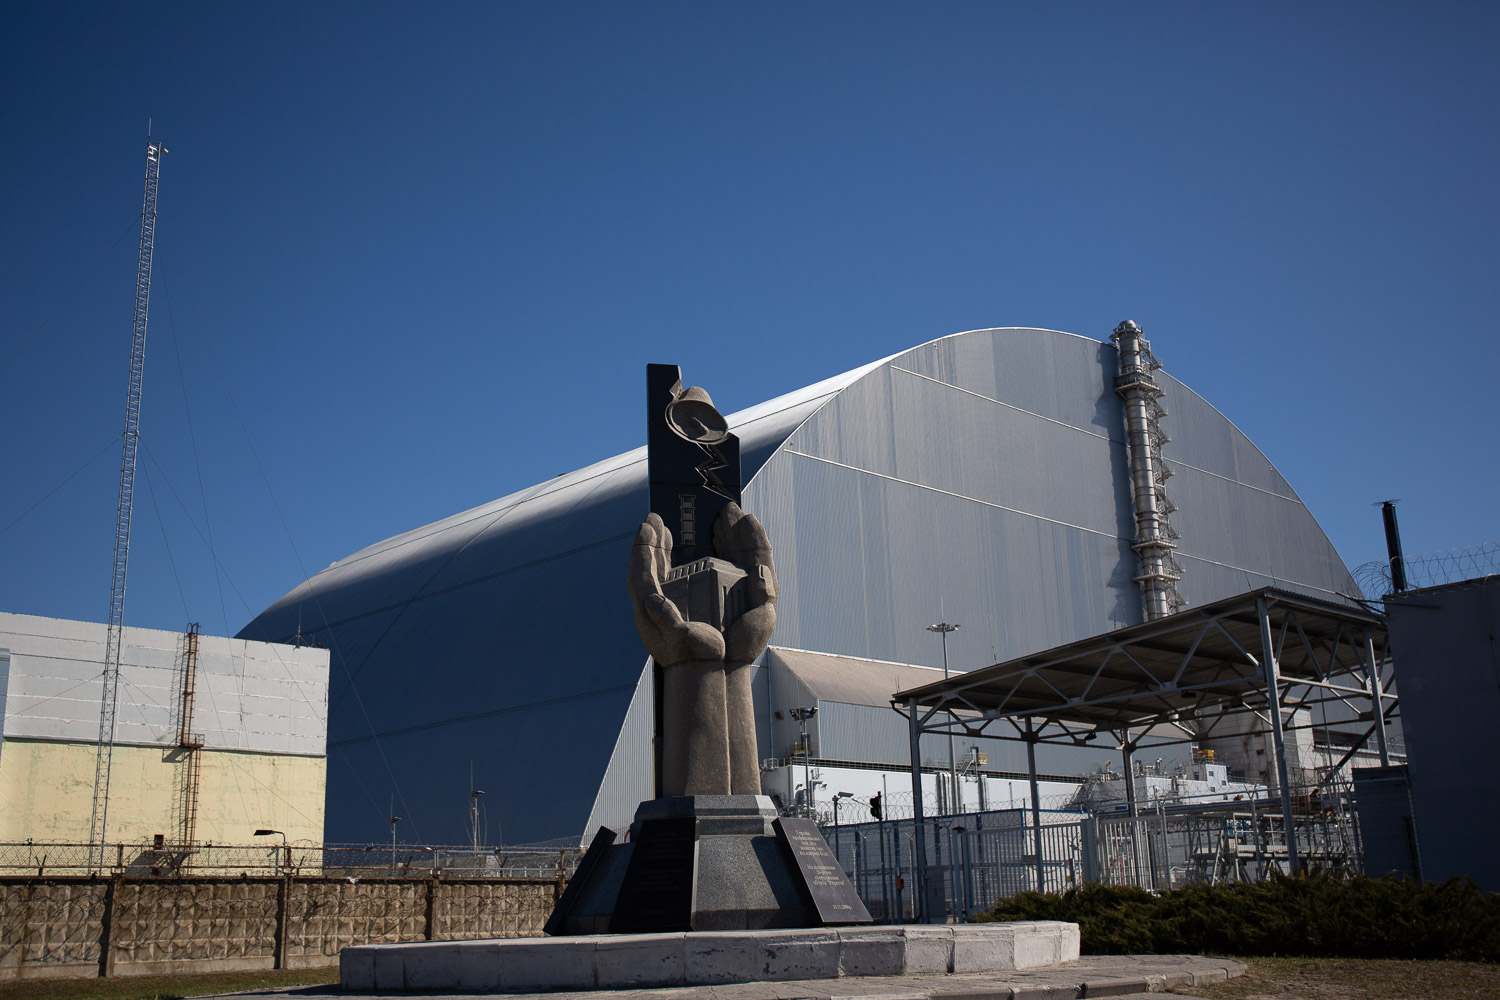 Chernobyl power plant with the sarcophagus in place